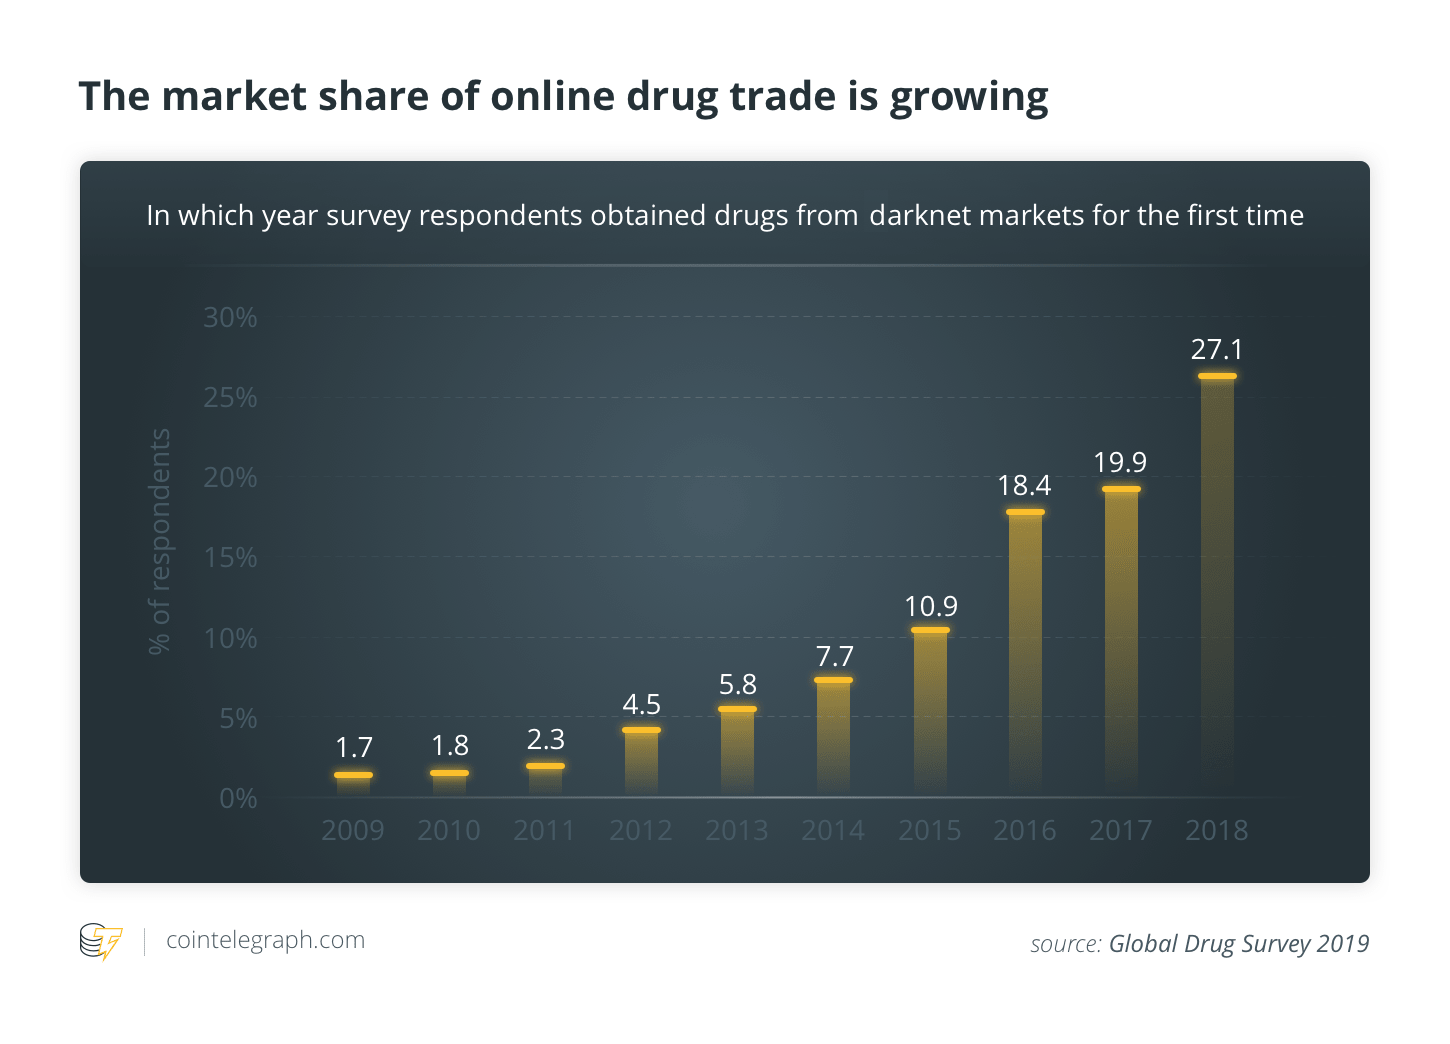 The market share of online drug trade is growing